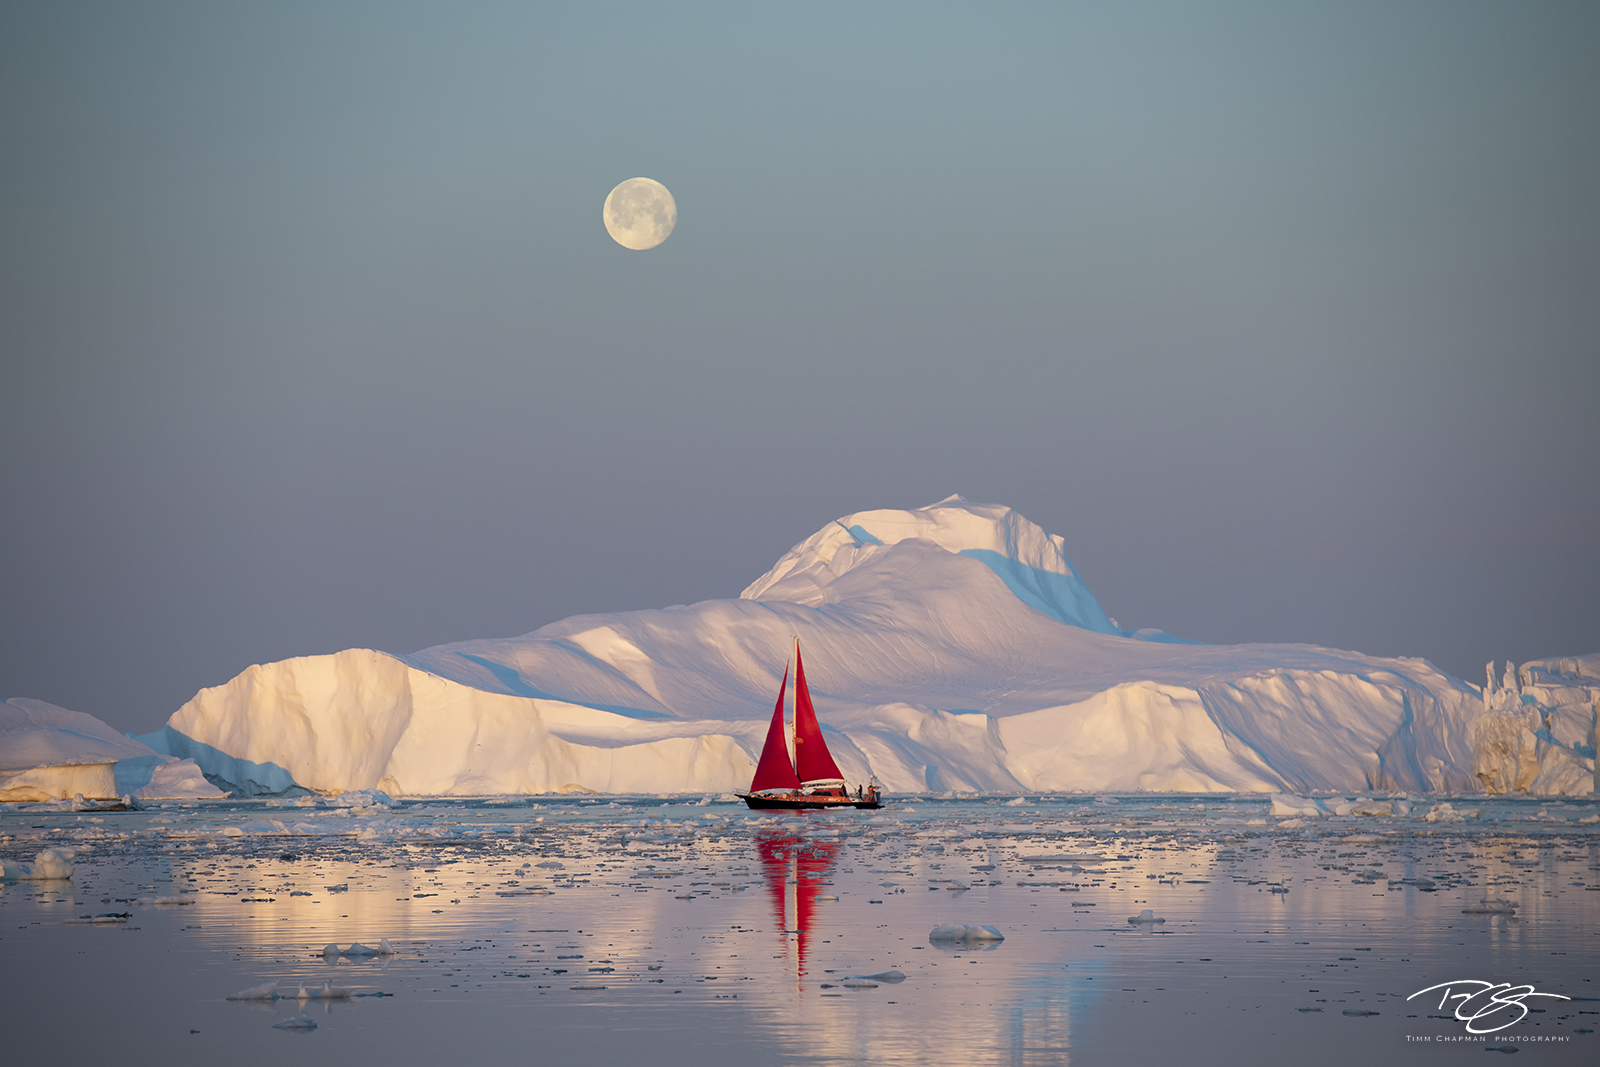 ice, iceberg, disko bay,  ship, sailboat, schooner,  full moon, sunrise, reflection yacht, red sails, scarlet sails, photo